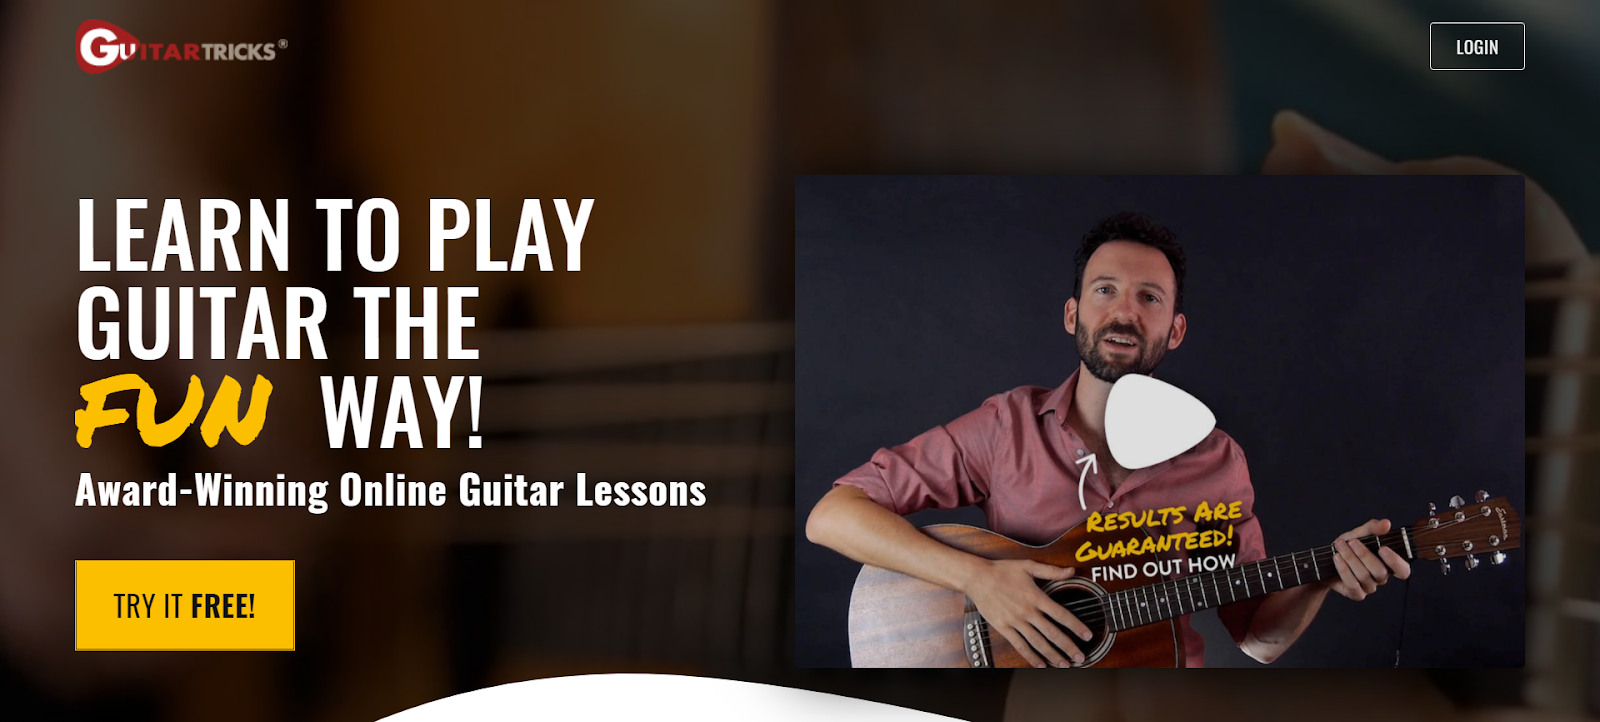 learn to play guitar with free trial button